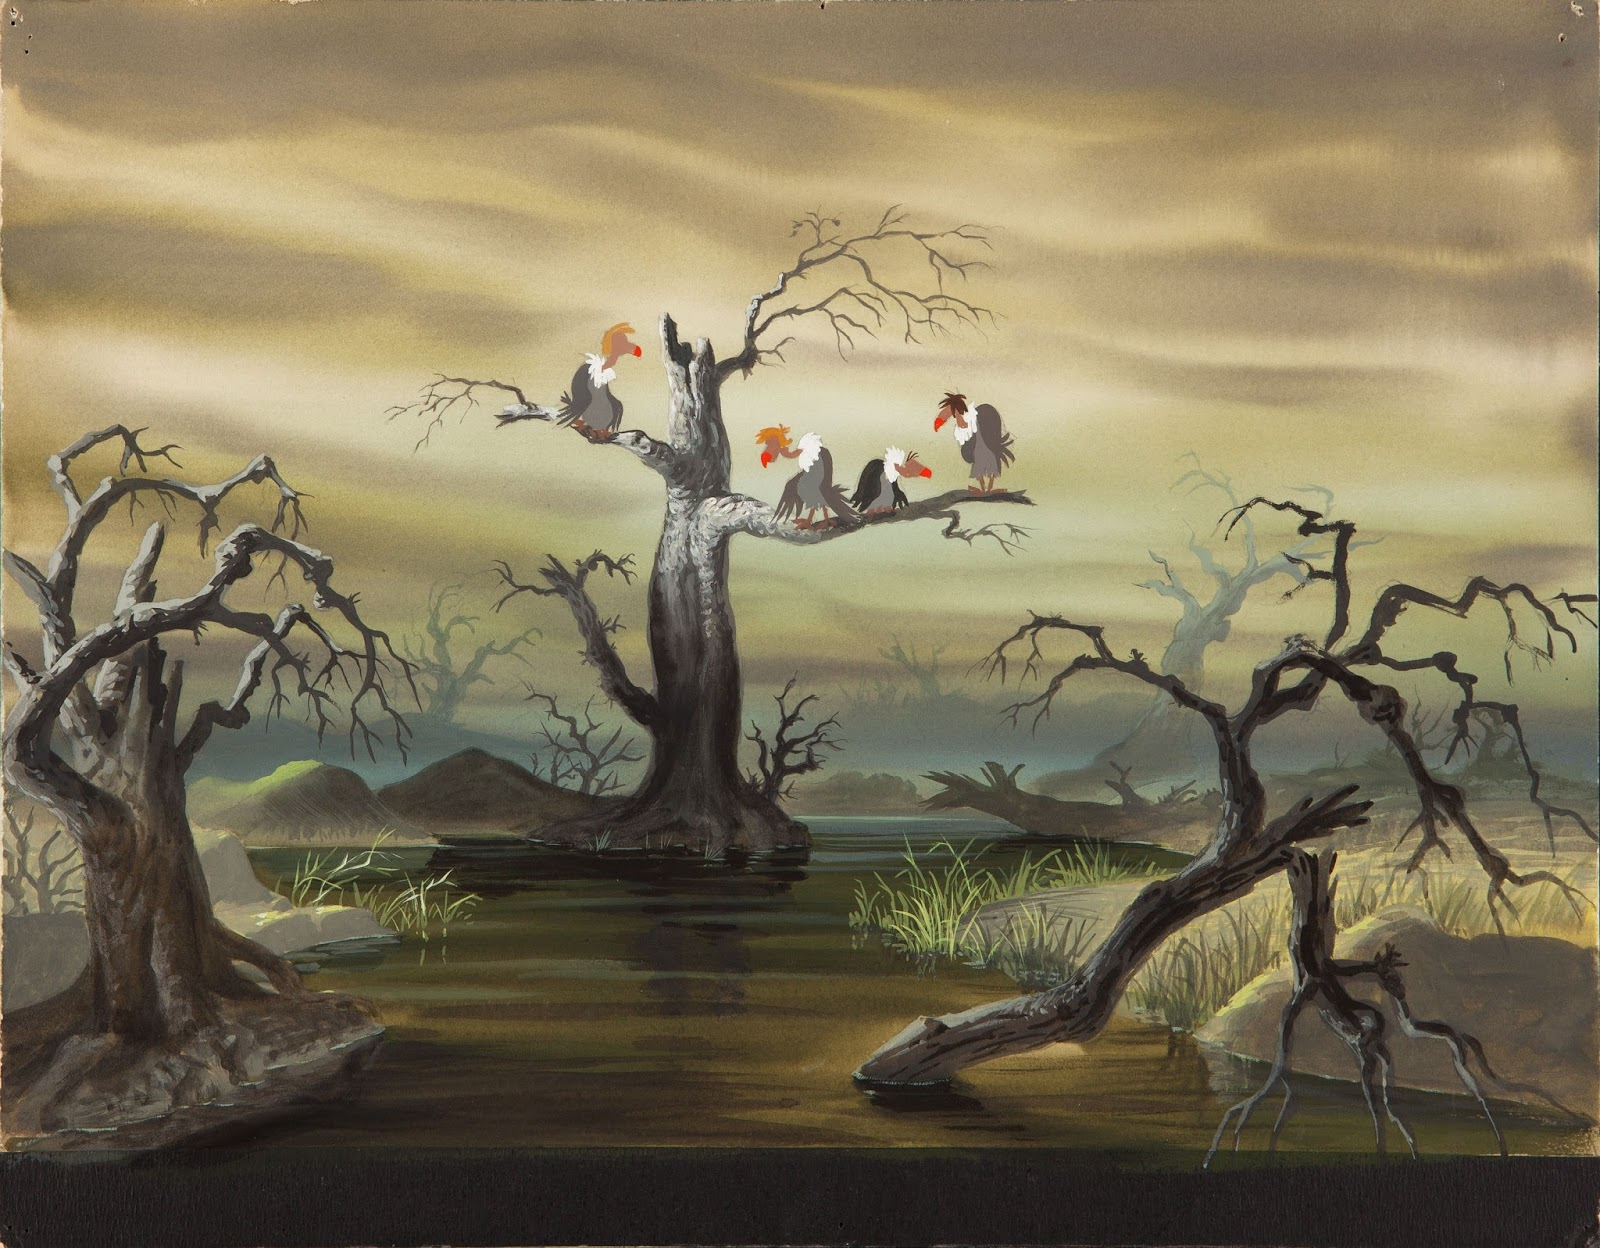 Uncategorized Jungle Book Vultures deja view jungle vultures i am not sure who painted this color key for the opening of sequence book but dark mood beautifully represents mowglis